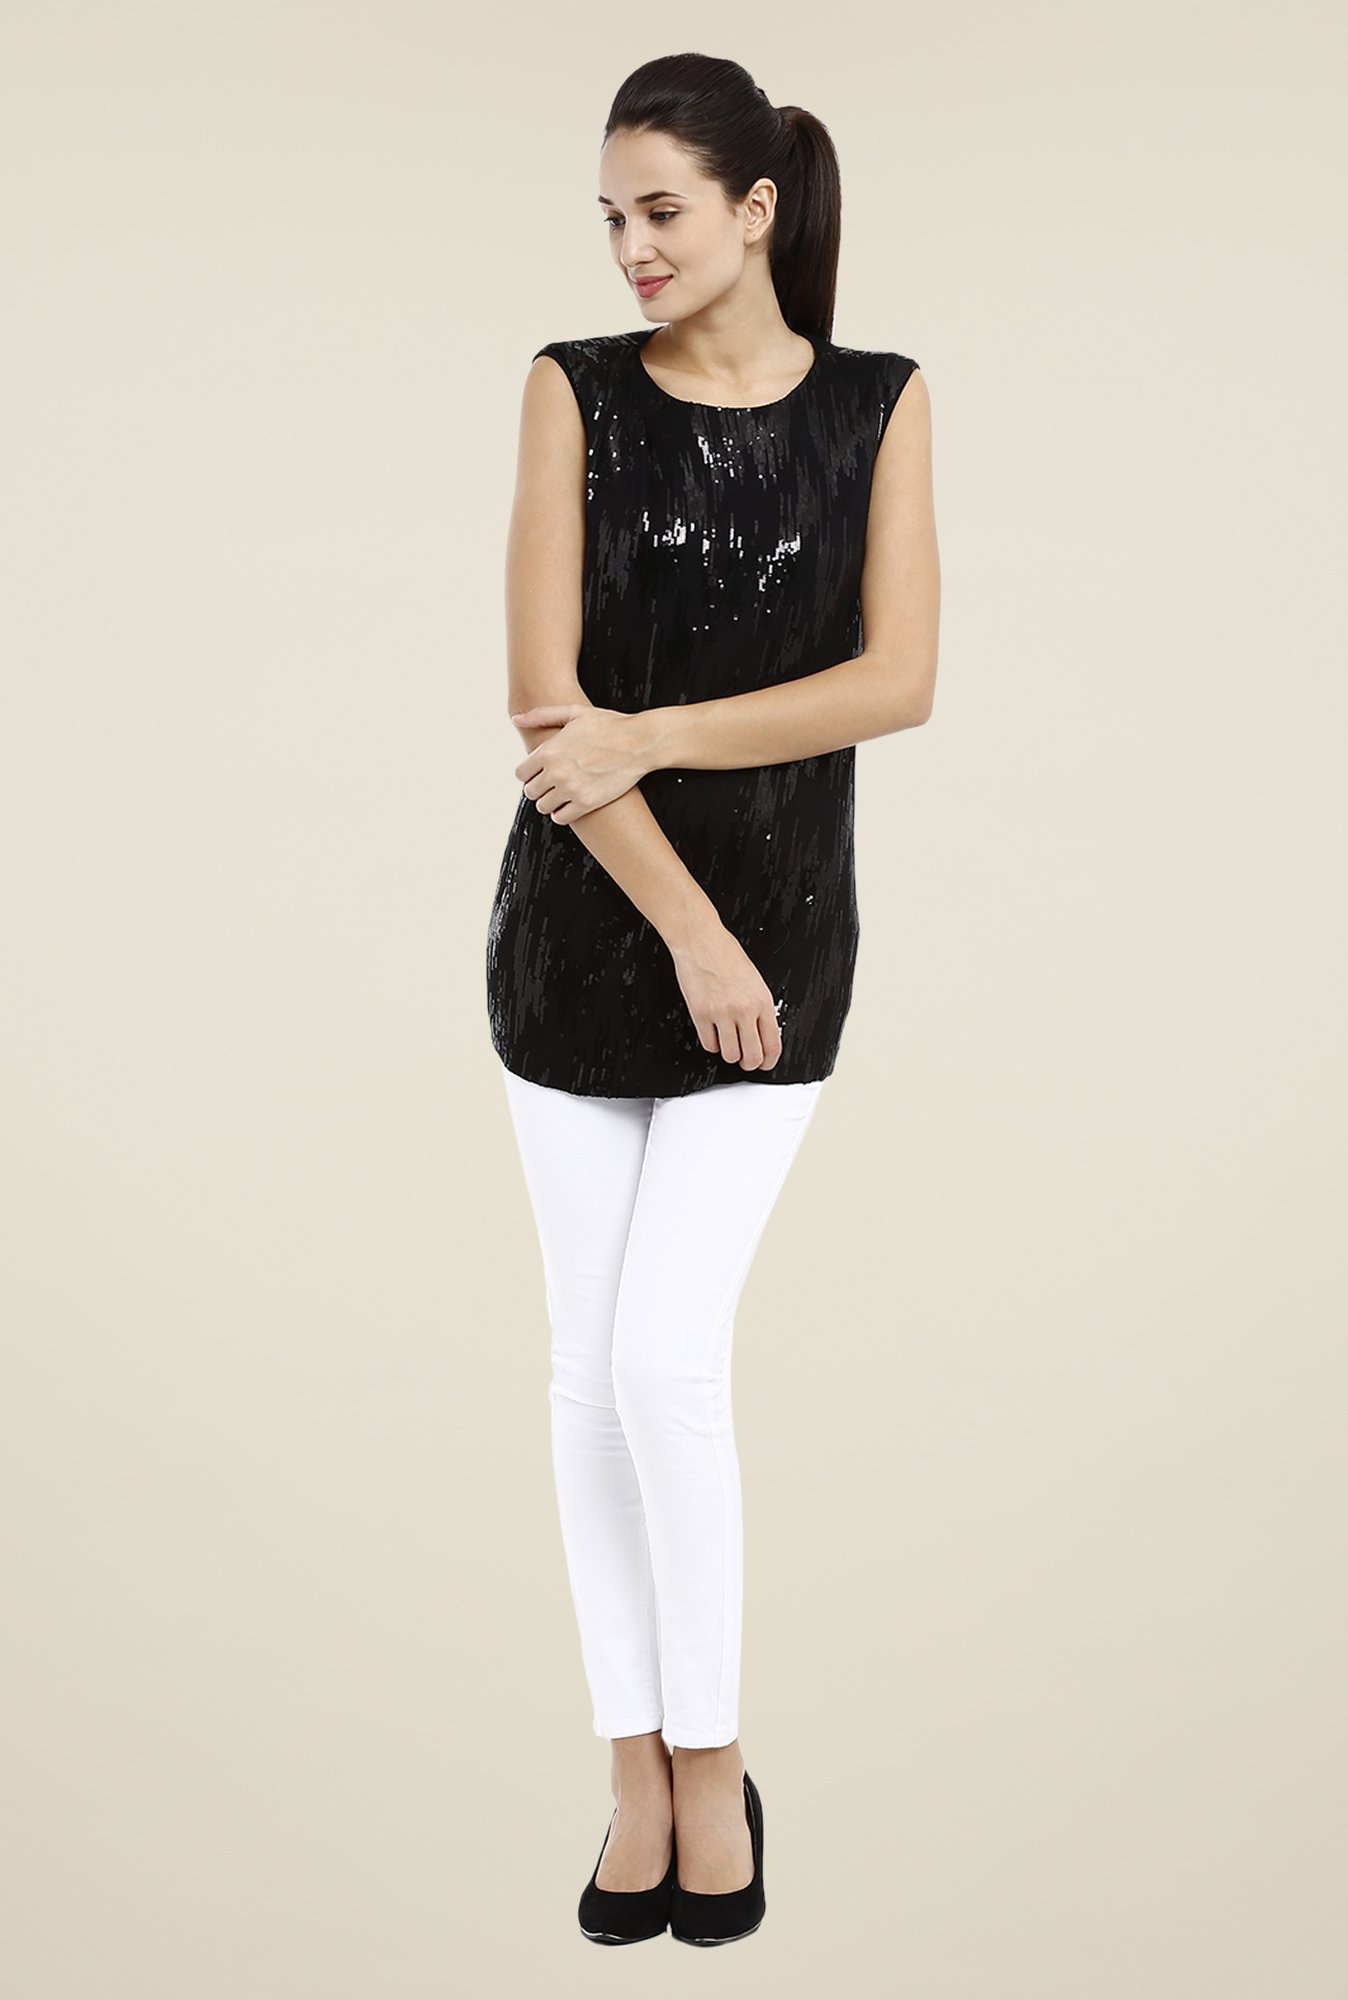 Avirate Black Embellished Top